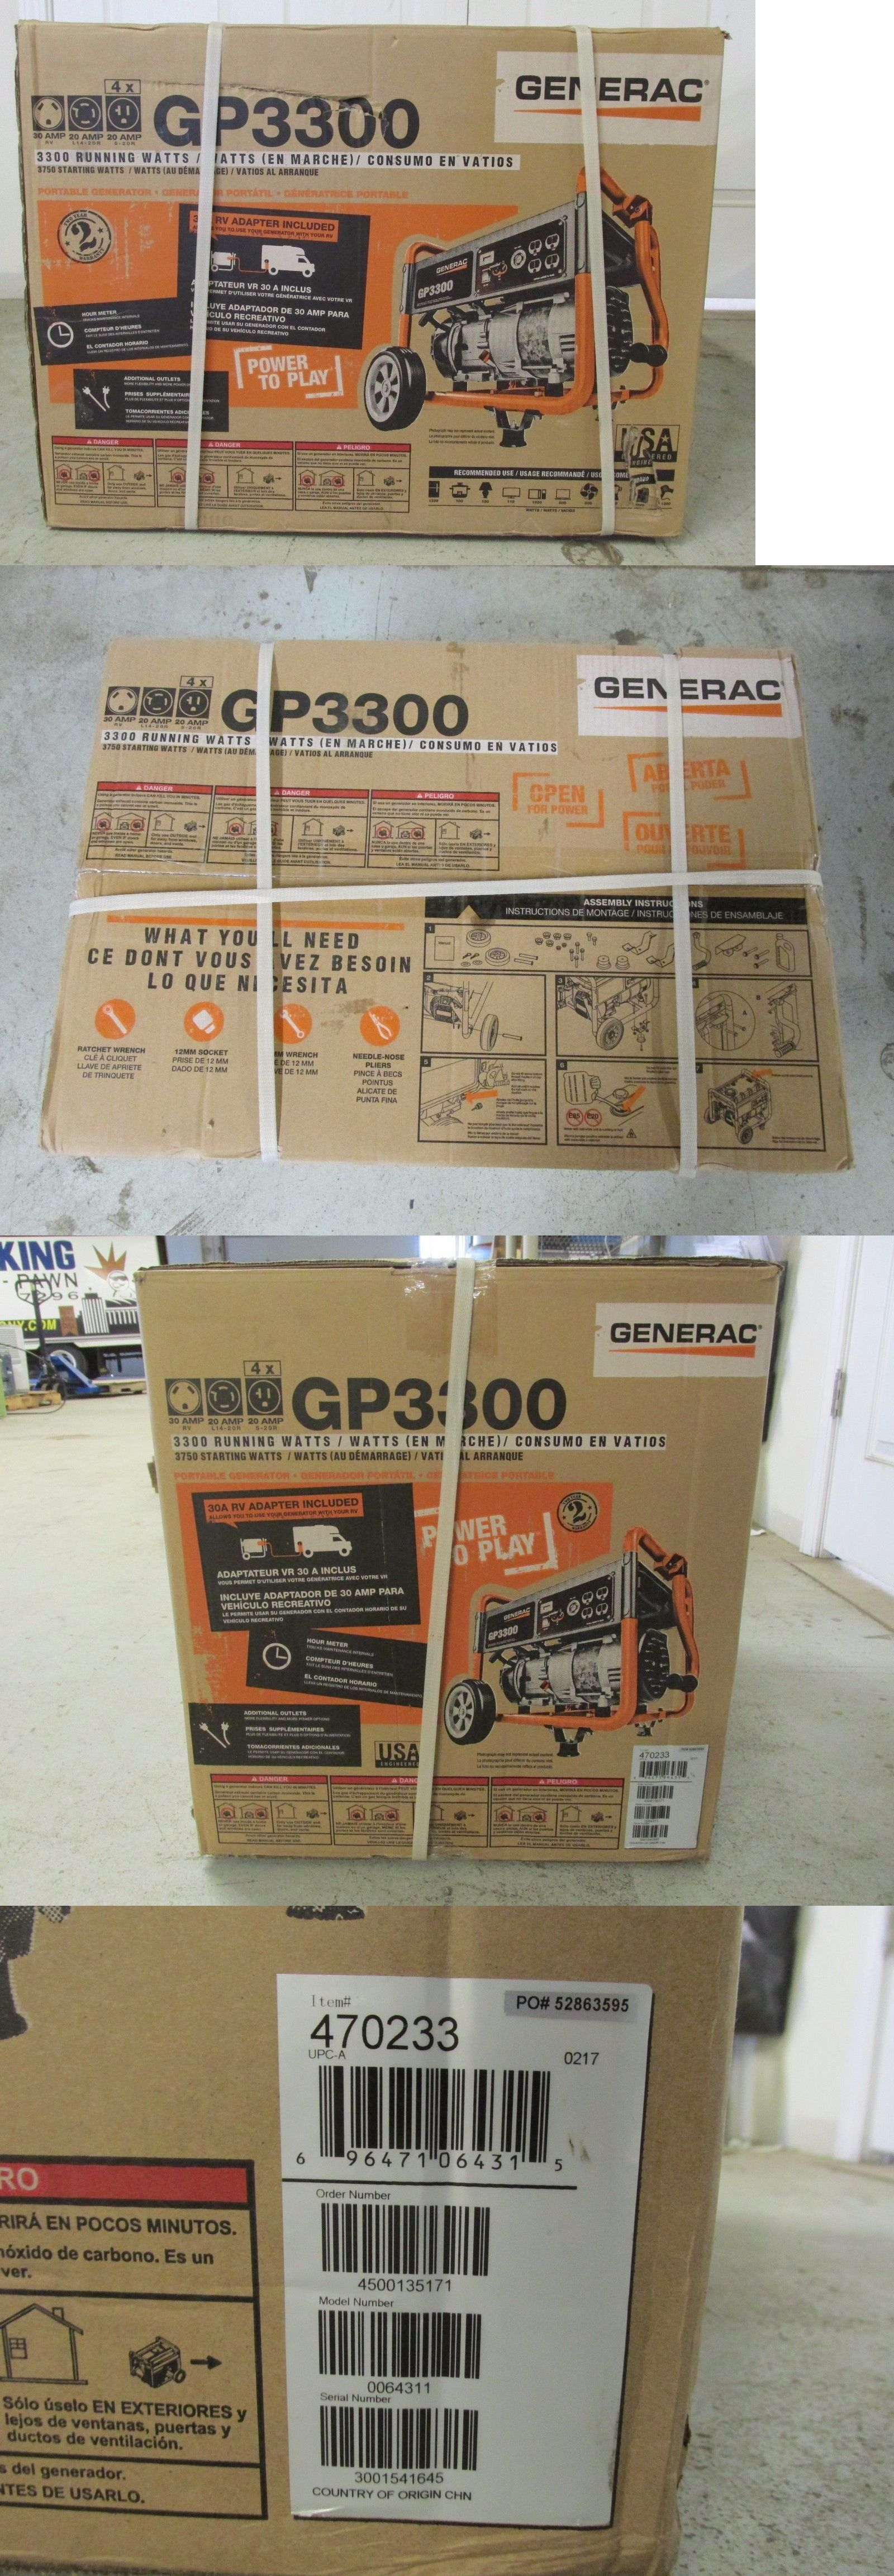 Generators Generac Gp3300 Portable Generator 3300 Watt